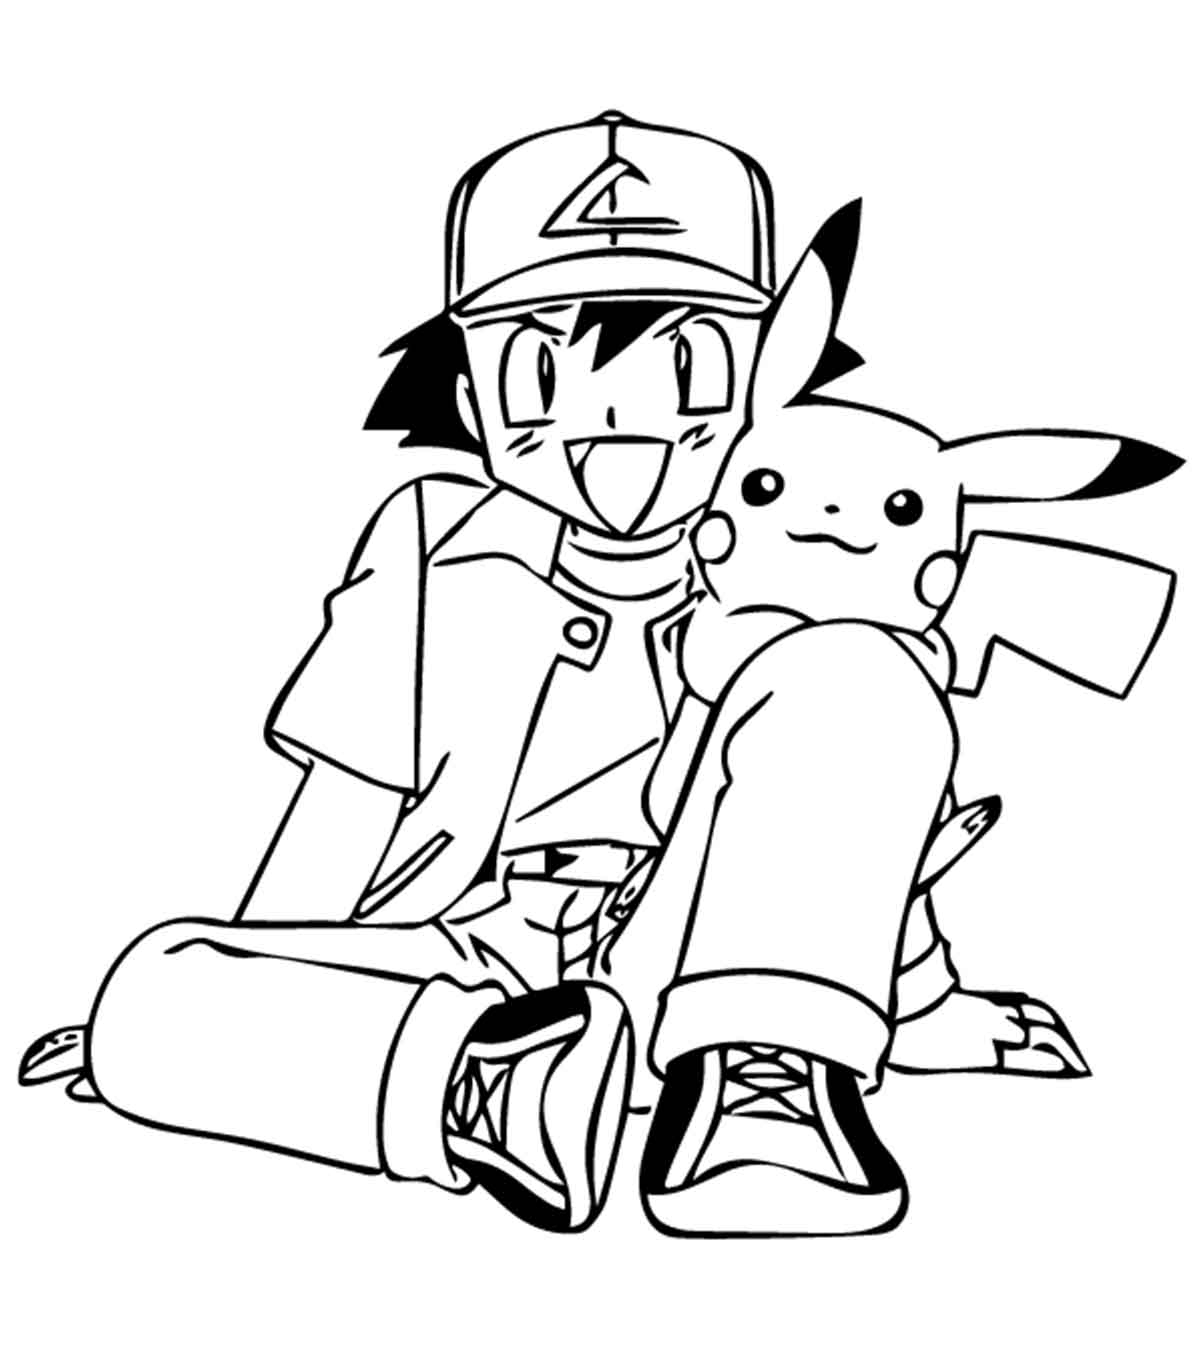 Poochyena Coloring Pages Top 93 Free Printable Pokemon Coloring Pages Online